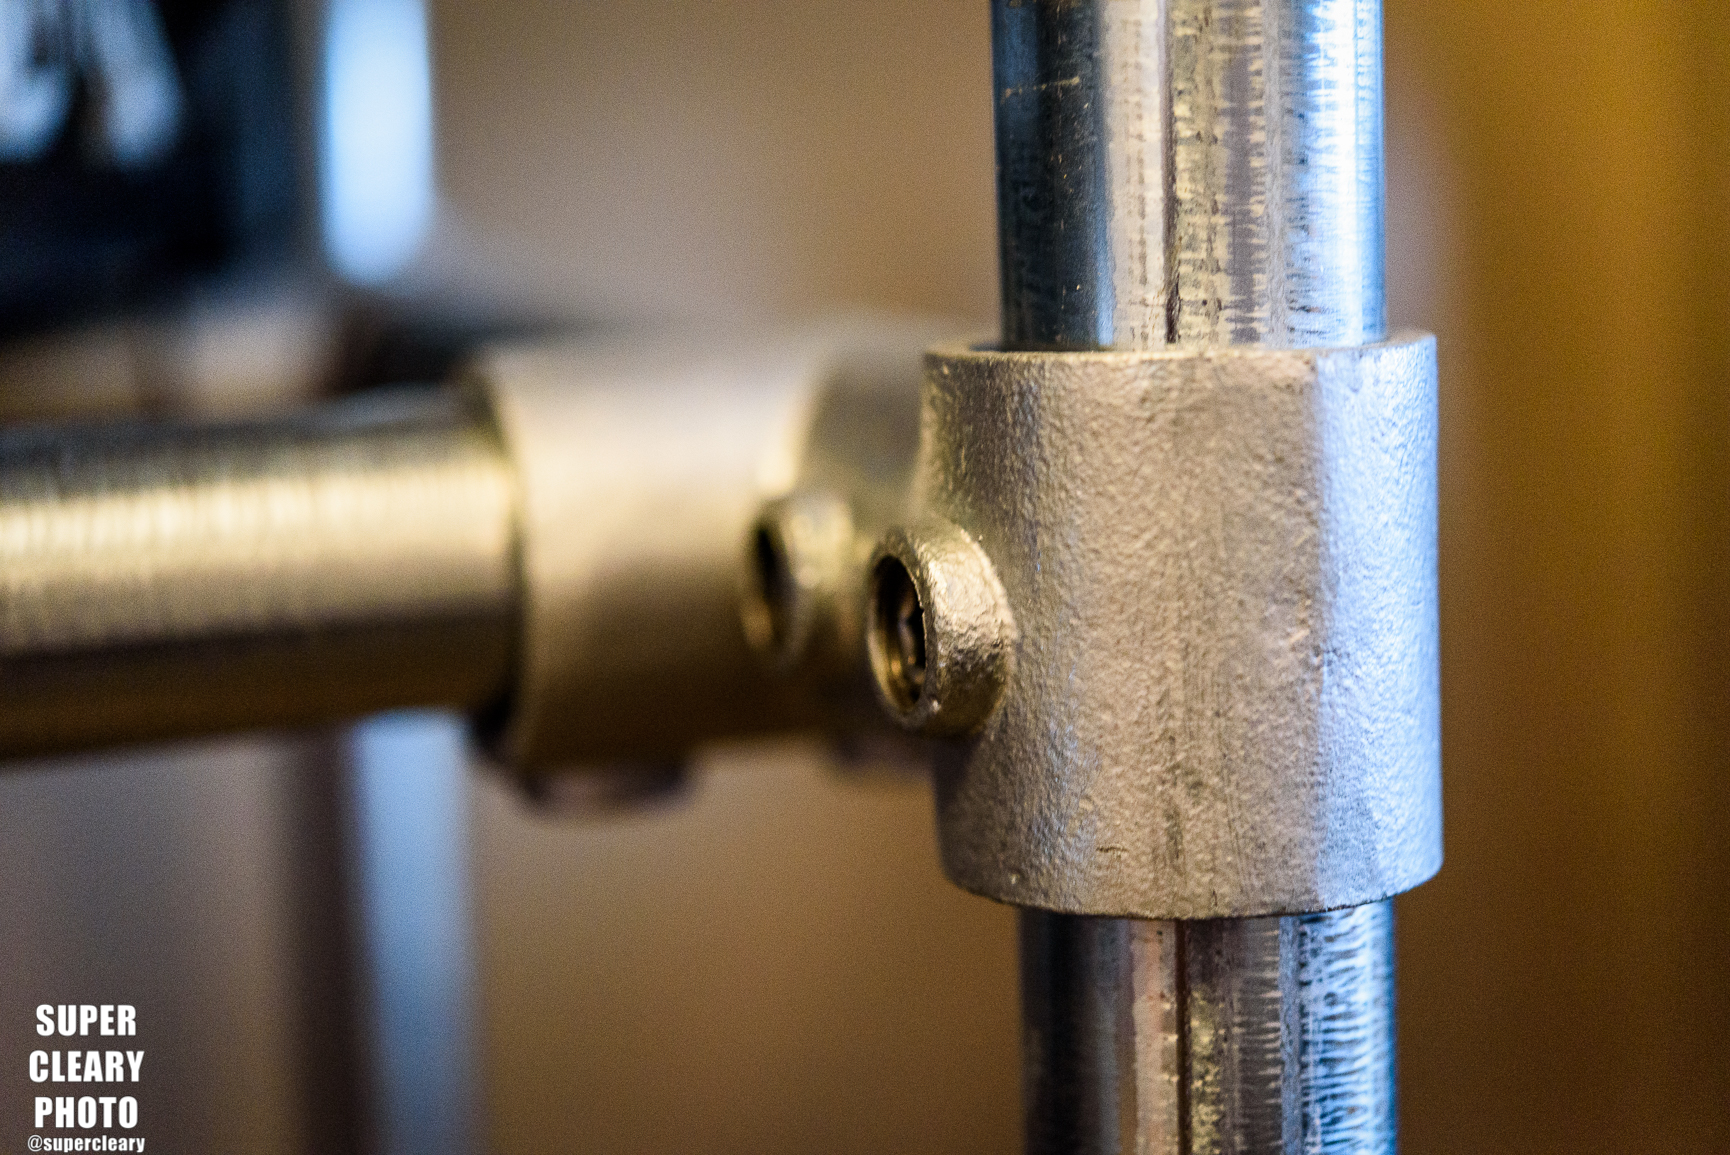 Each connection is locked in with these pipe clamps and a hex wrench. All heights can be adjusted however you like.